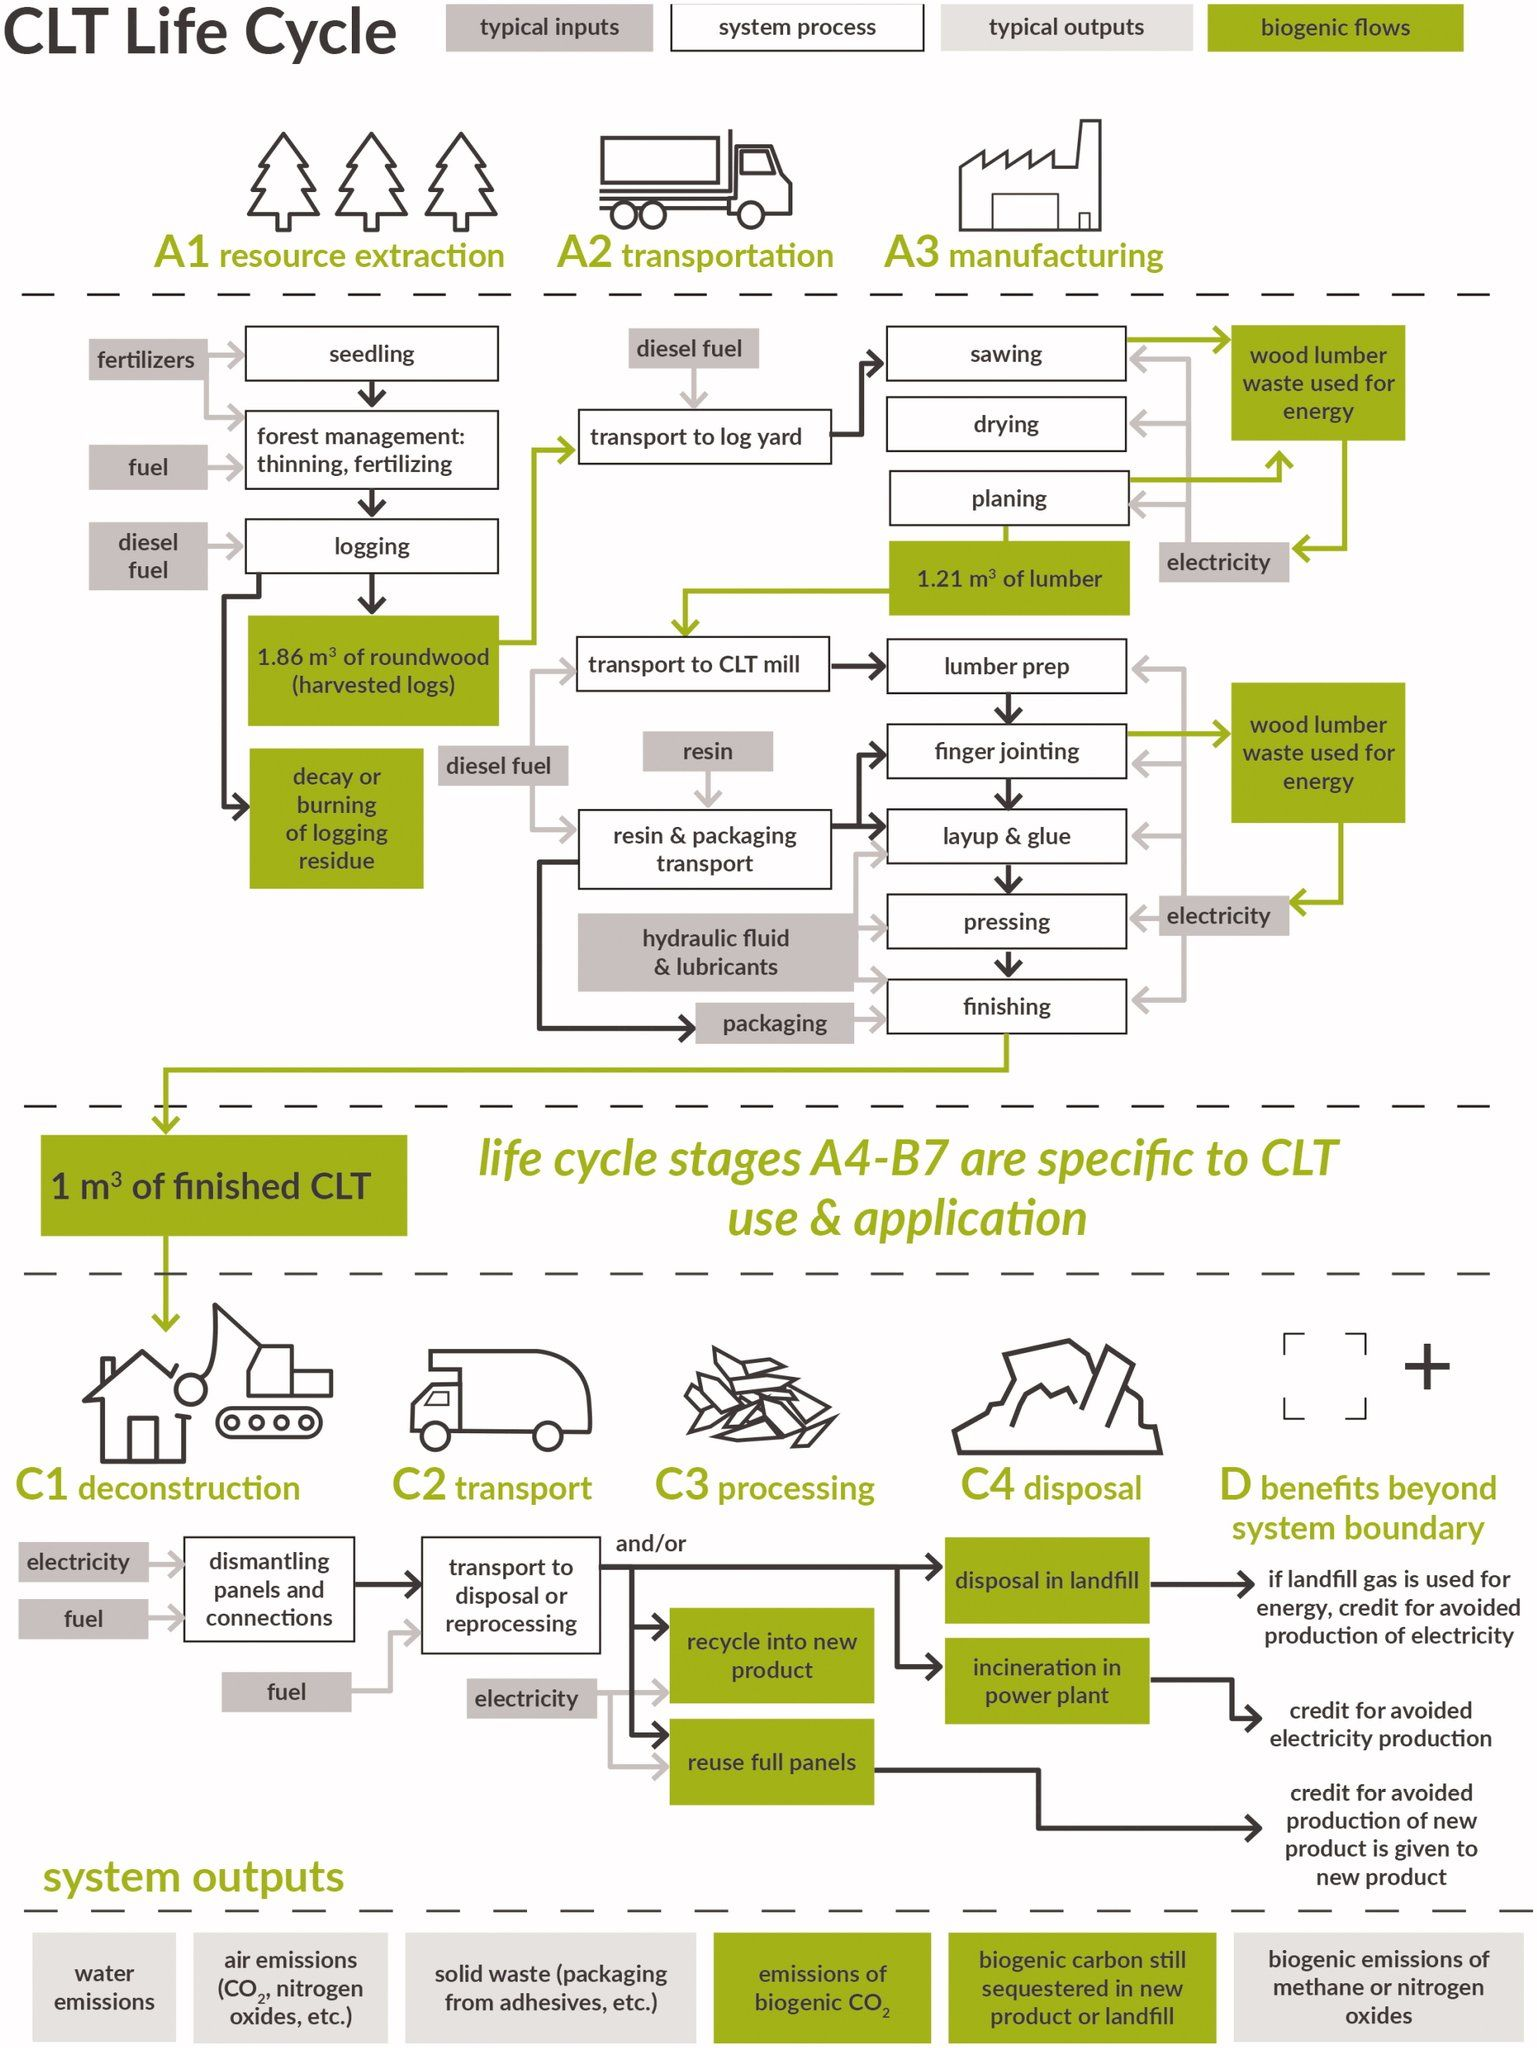 Eitcn On Twitter In 2021 Embodied Energy Environmental Impact Carbon Sequestration